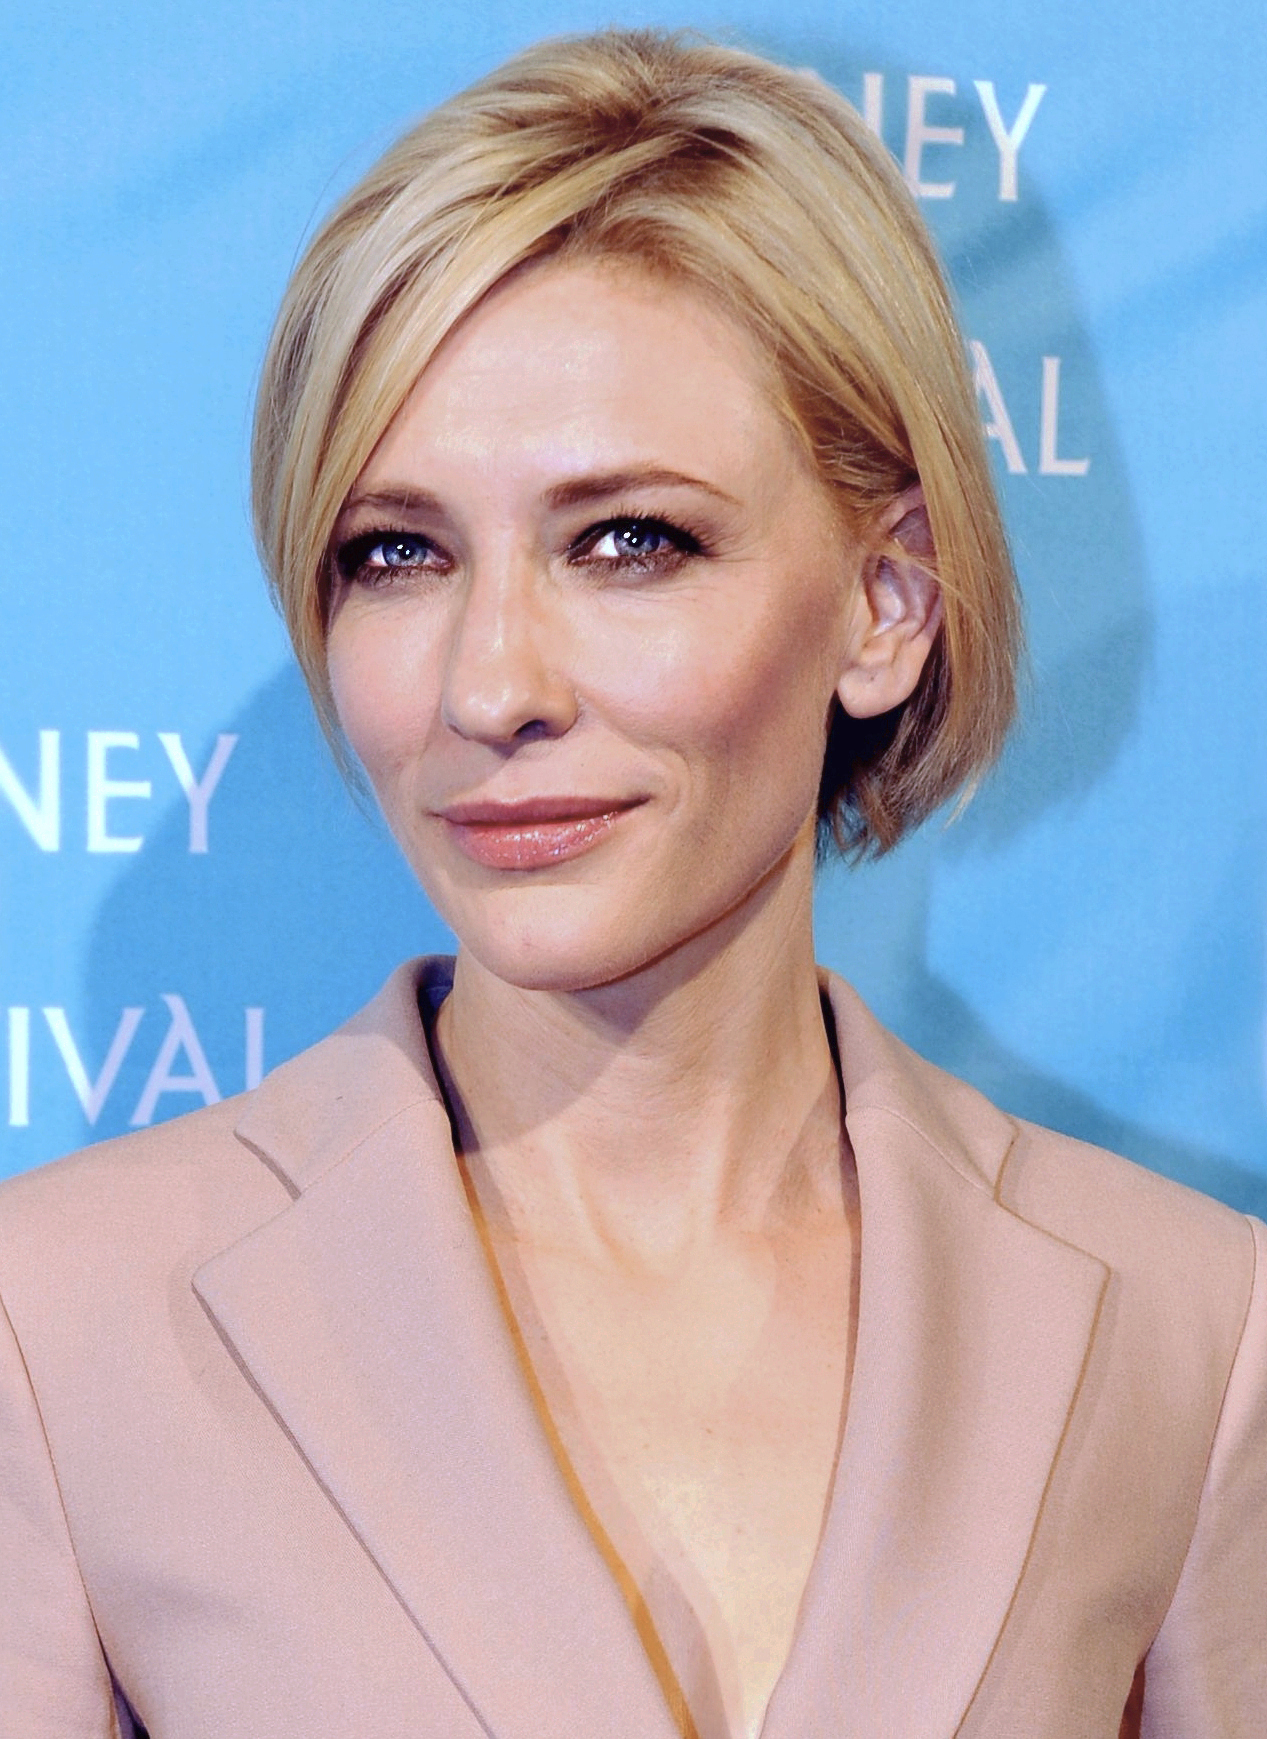 Blanchett at the 2011 Sydney Cate Blanchett